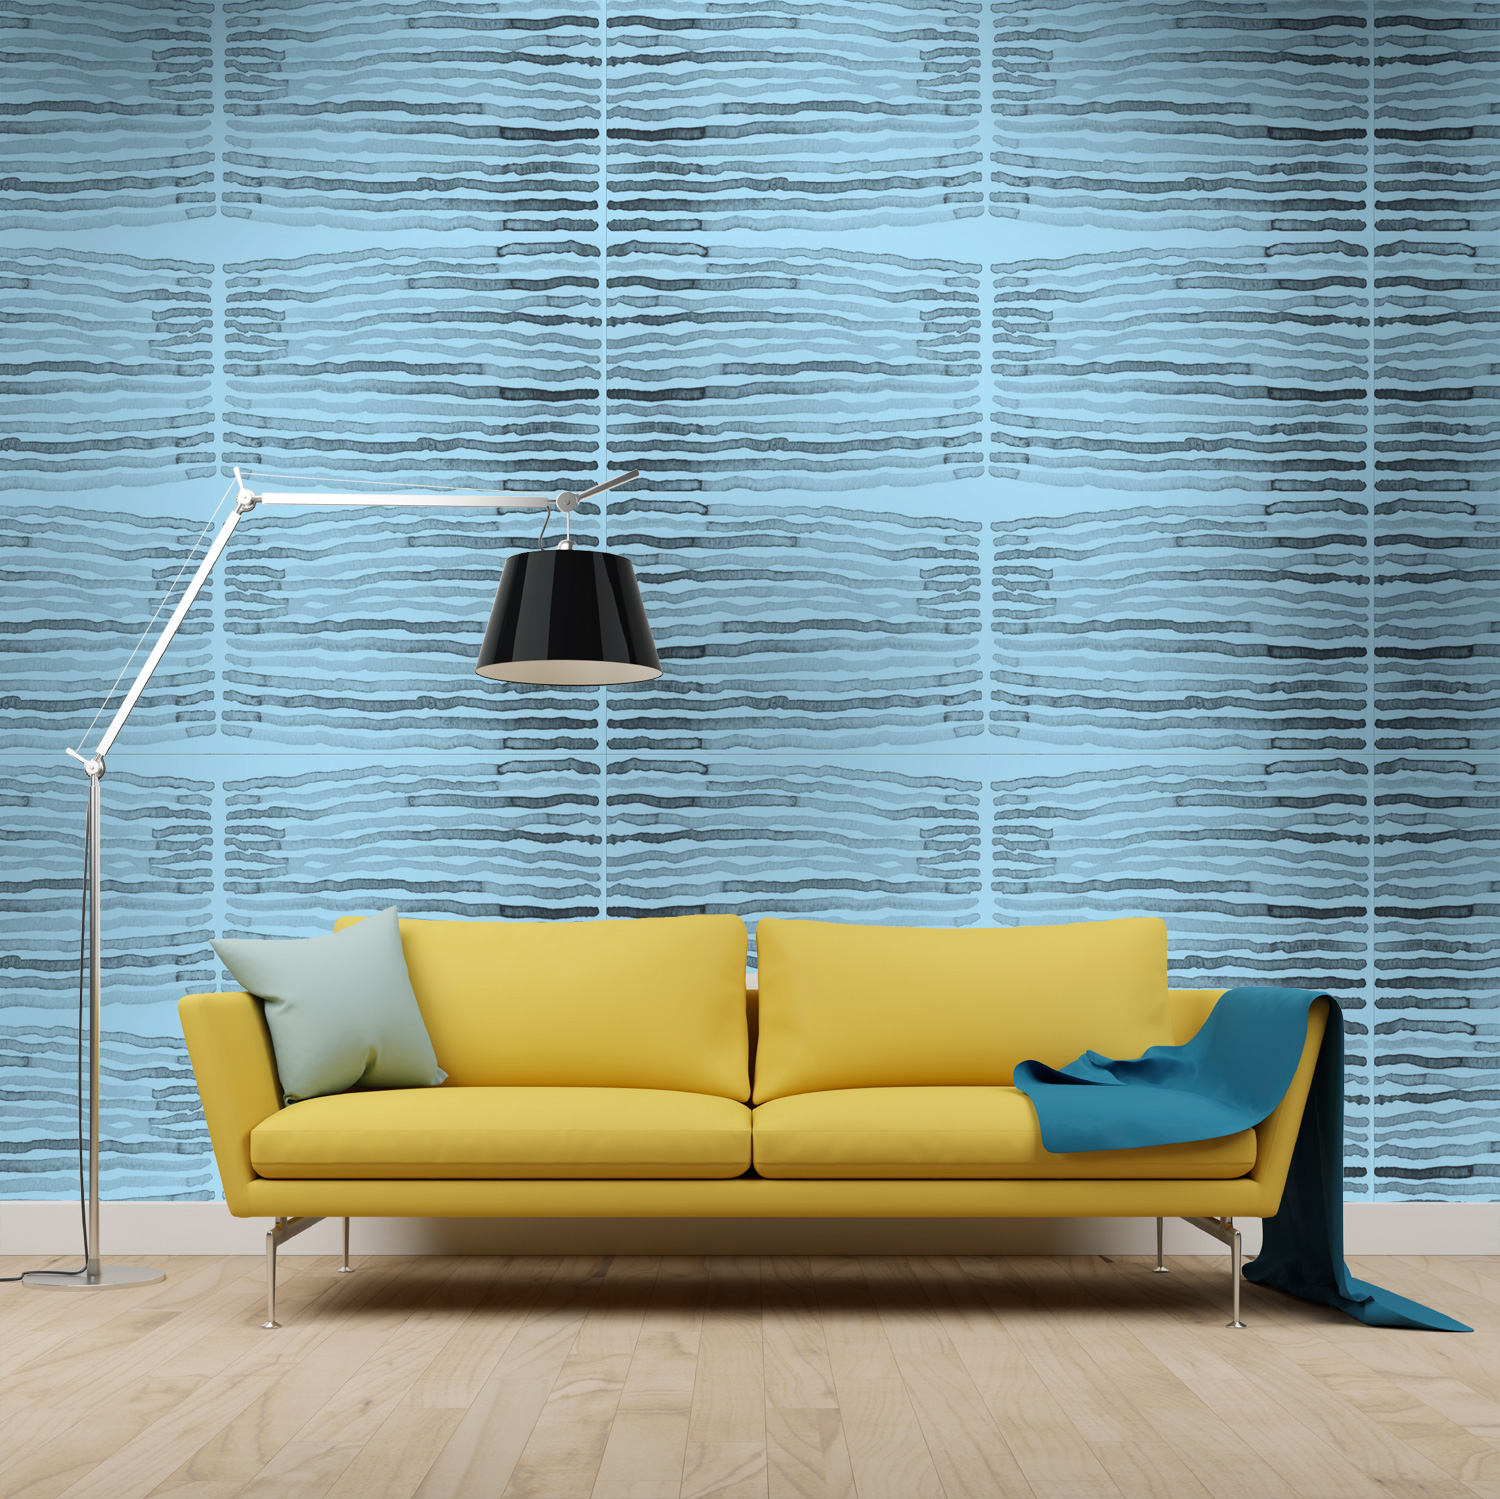 Yellow-Couch-Black-Lamp-LOUISE-cyan.jpg